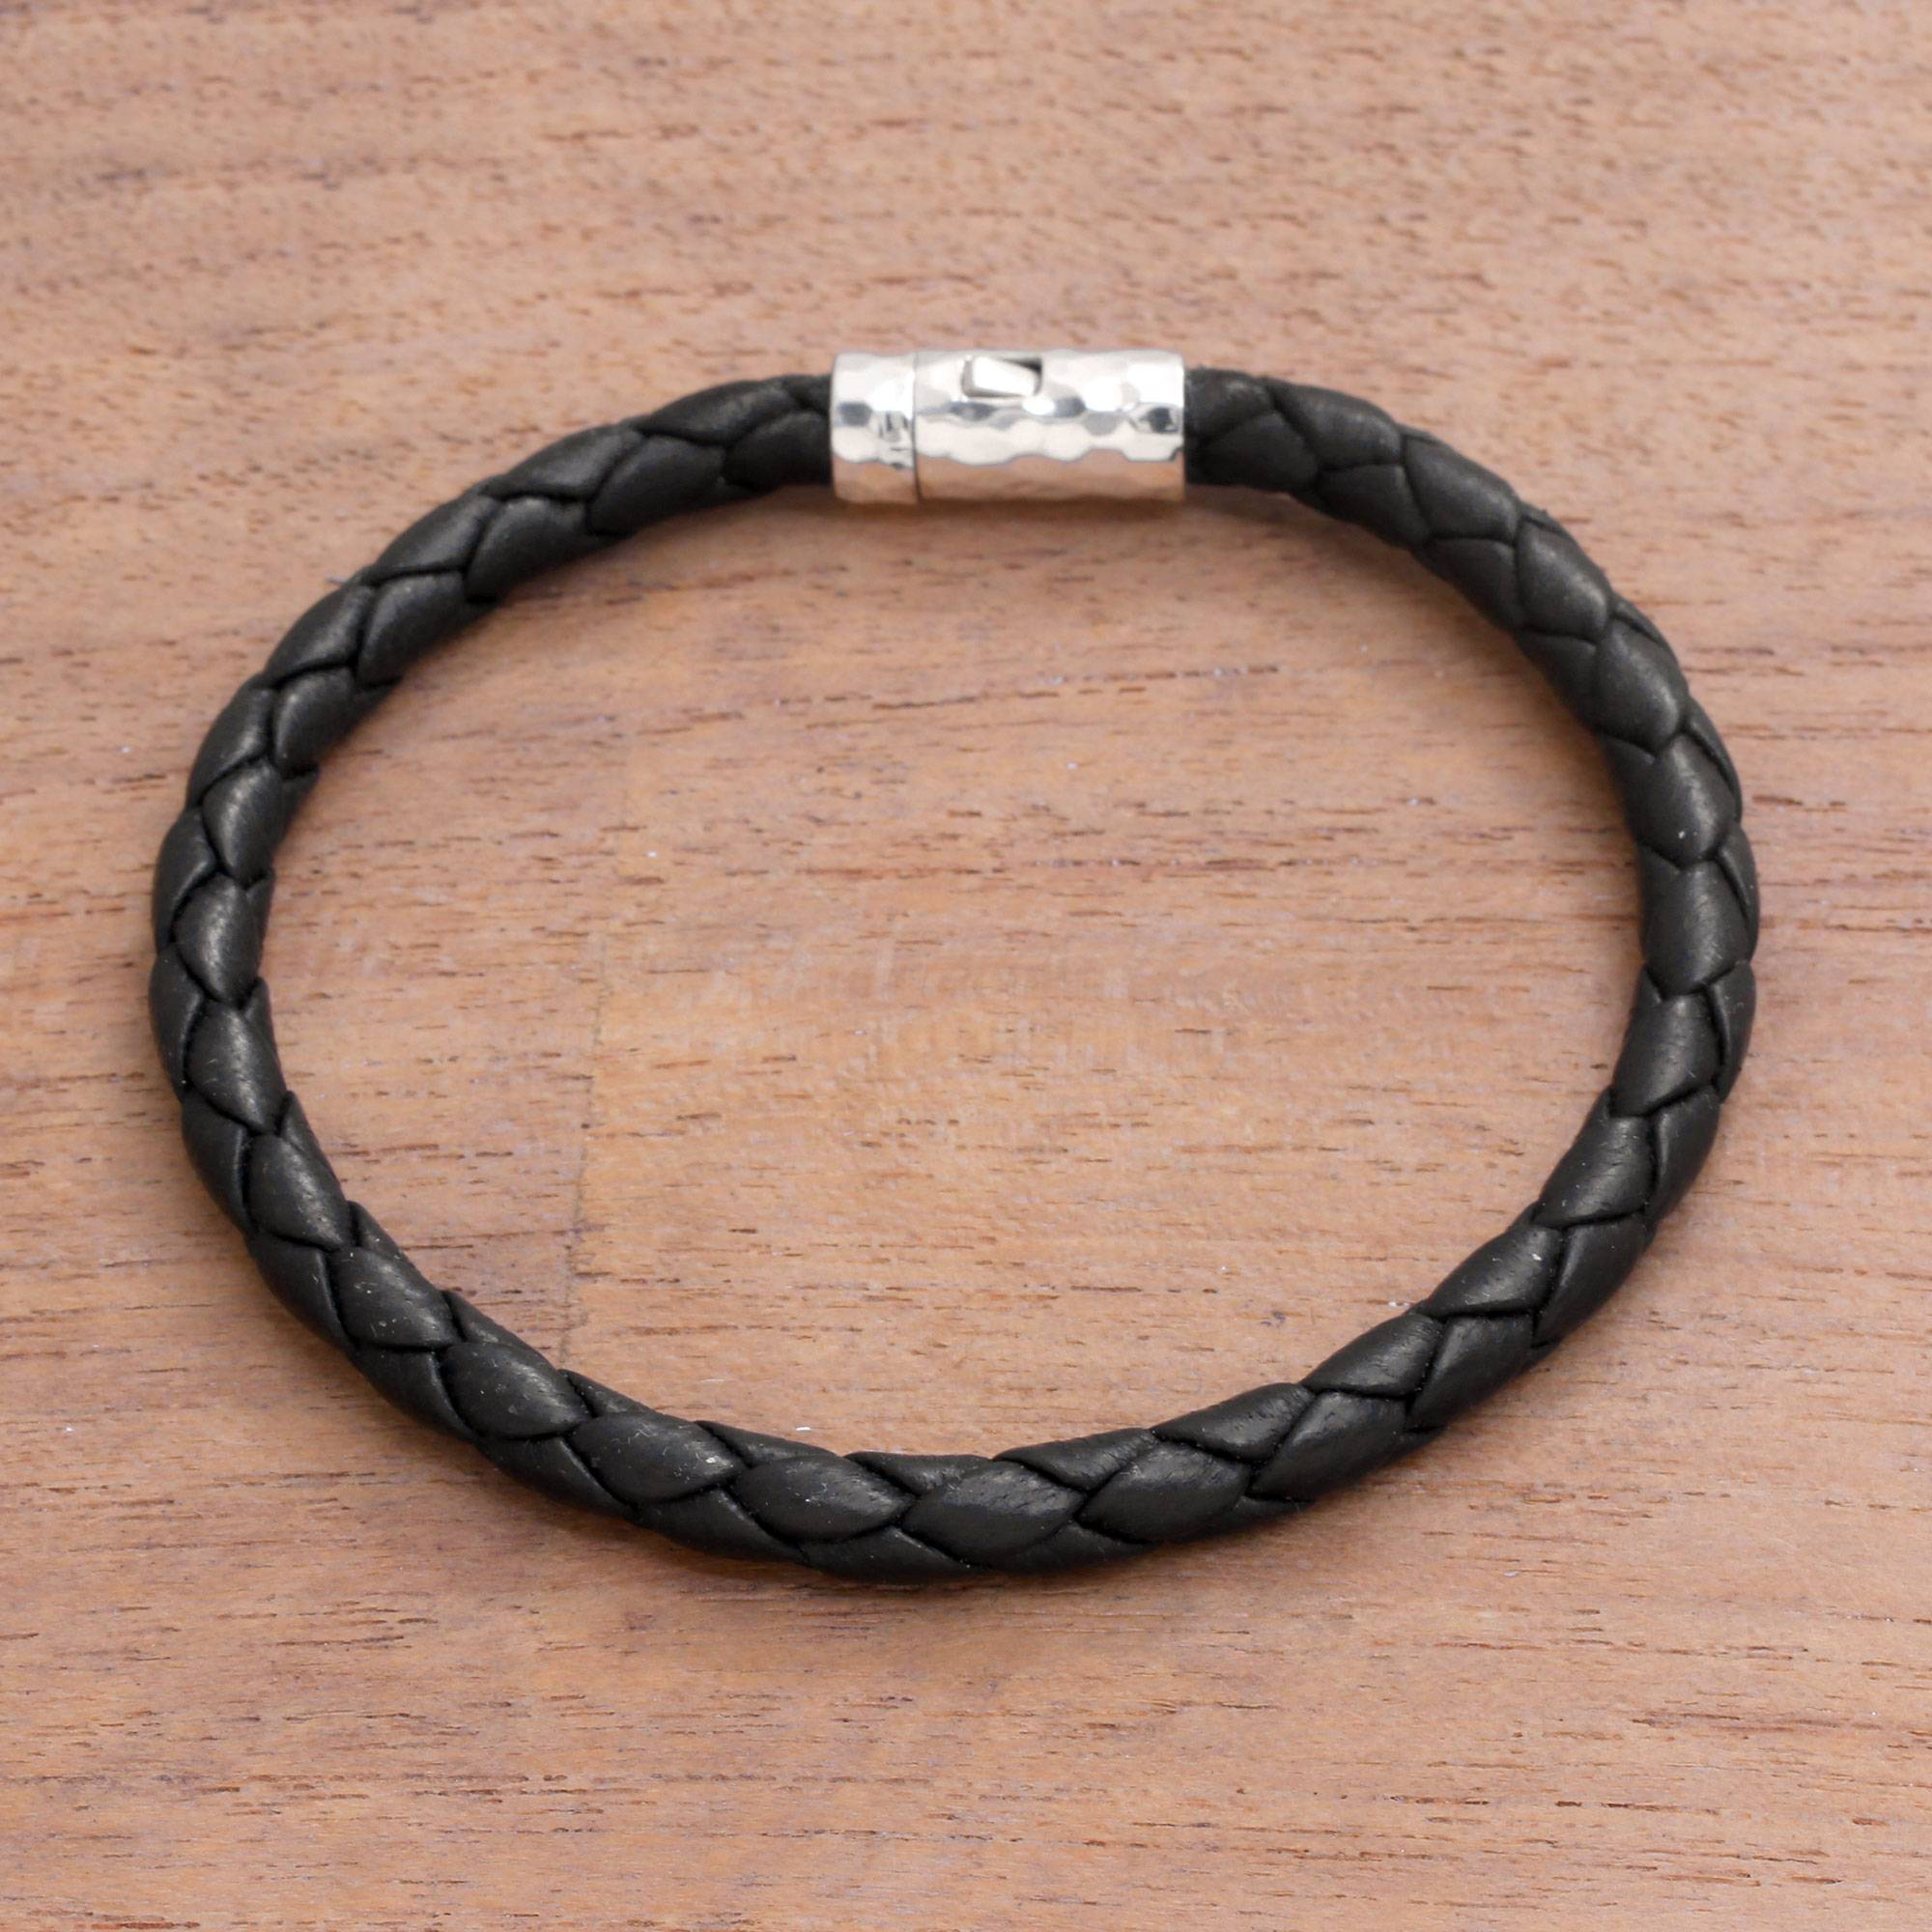 Leather Braided Bracelet From Bali